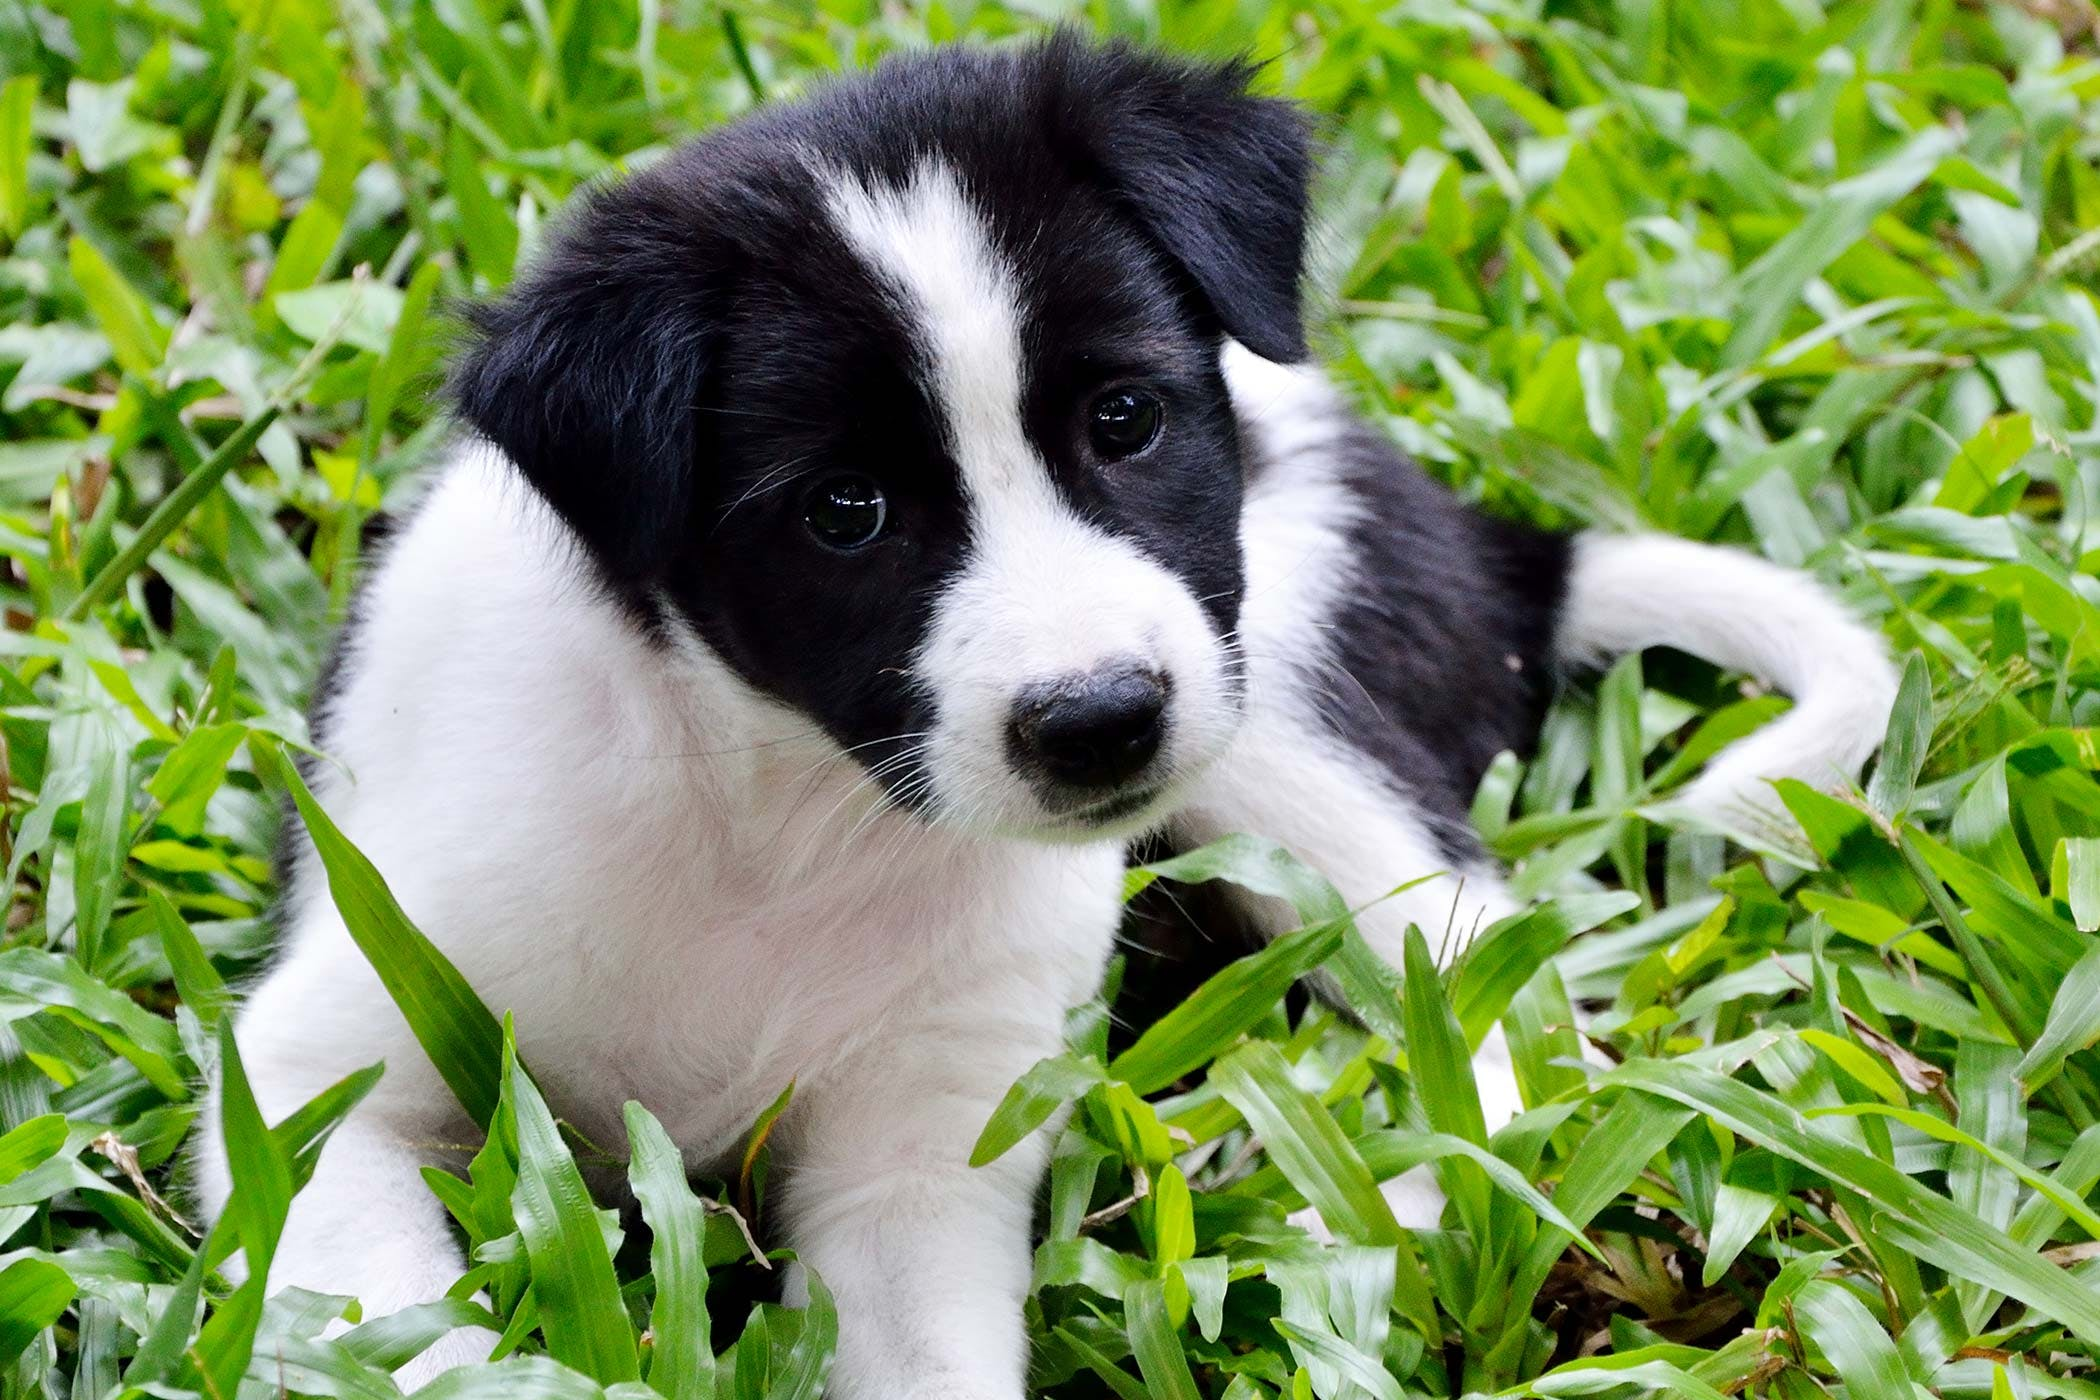 Kibbles and Bits Allergies in Dogs